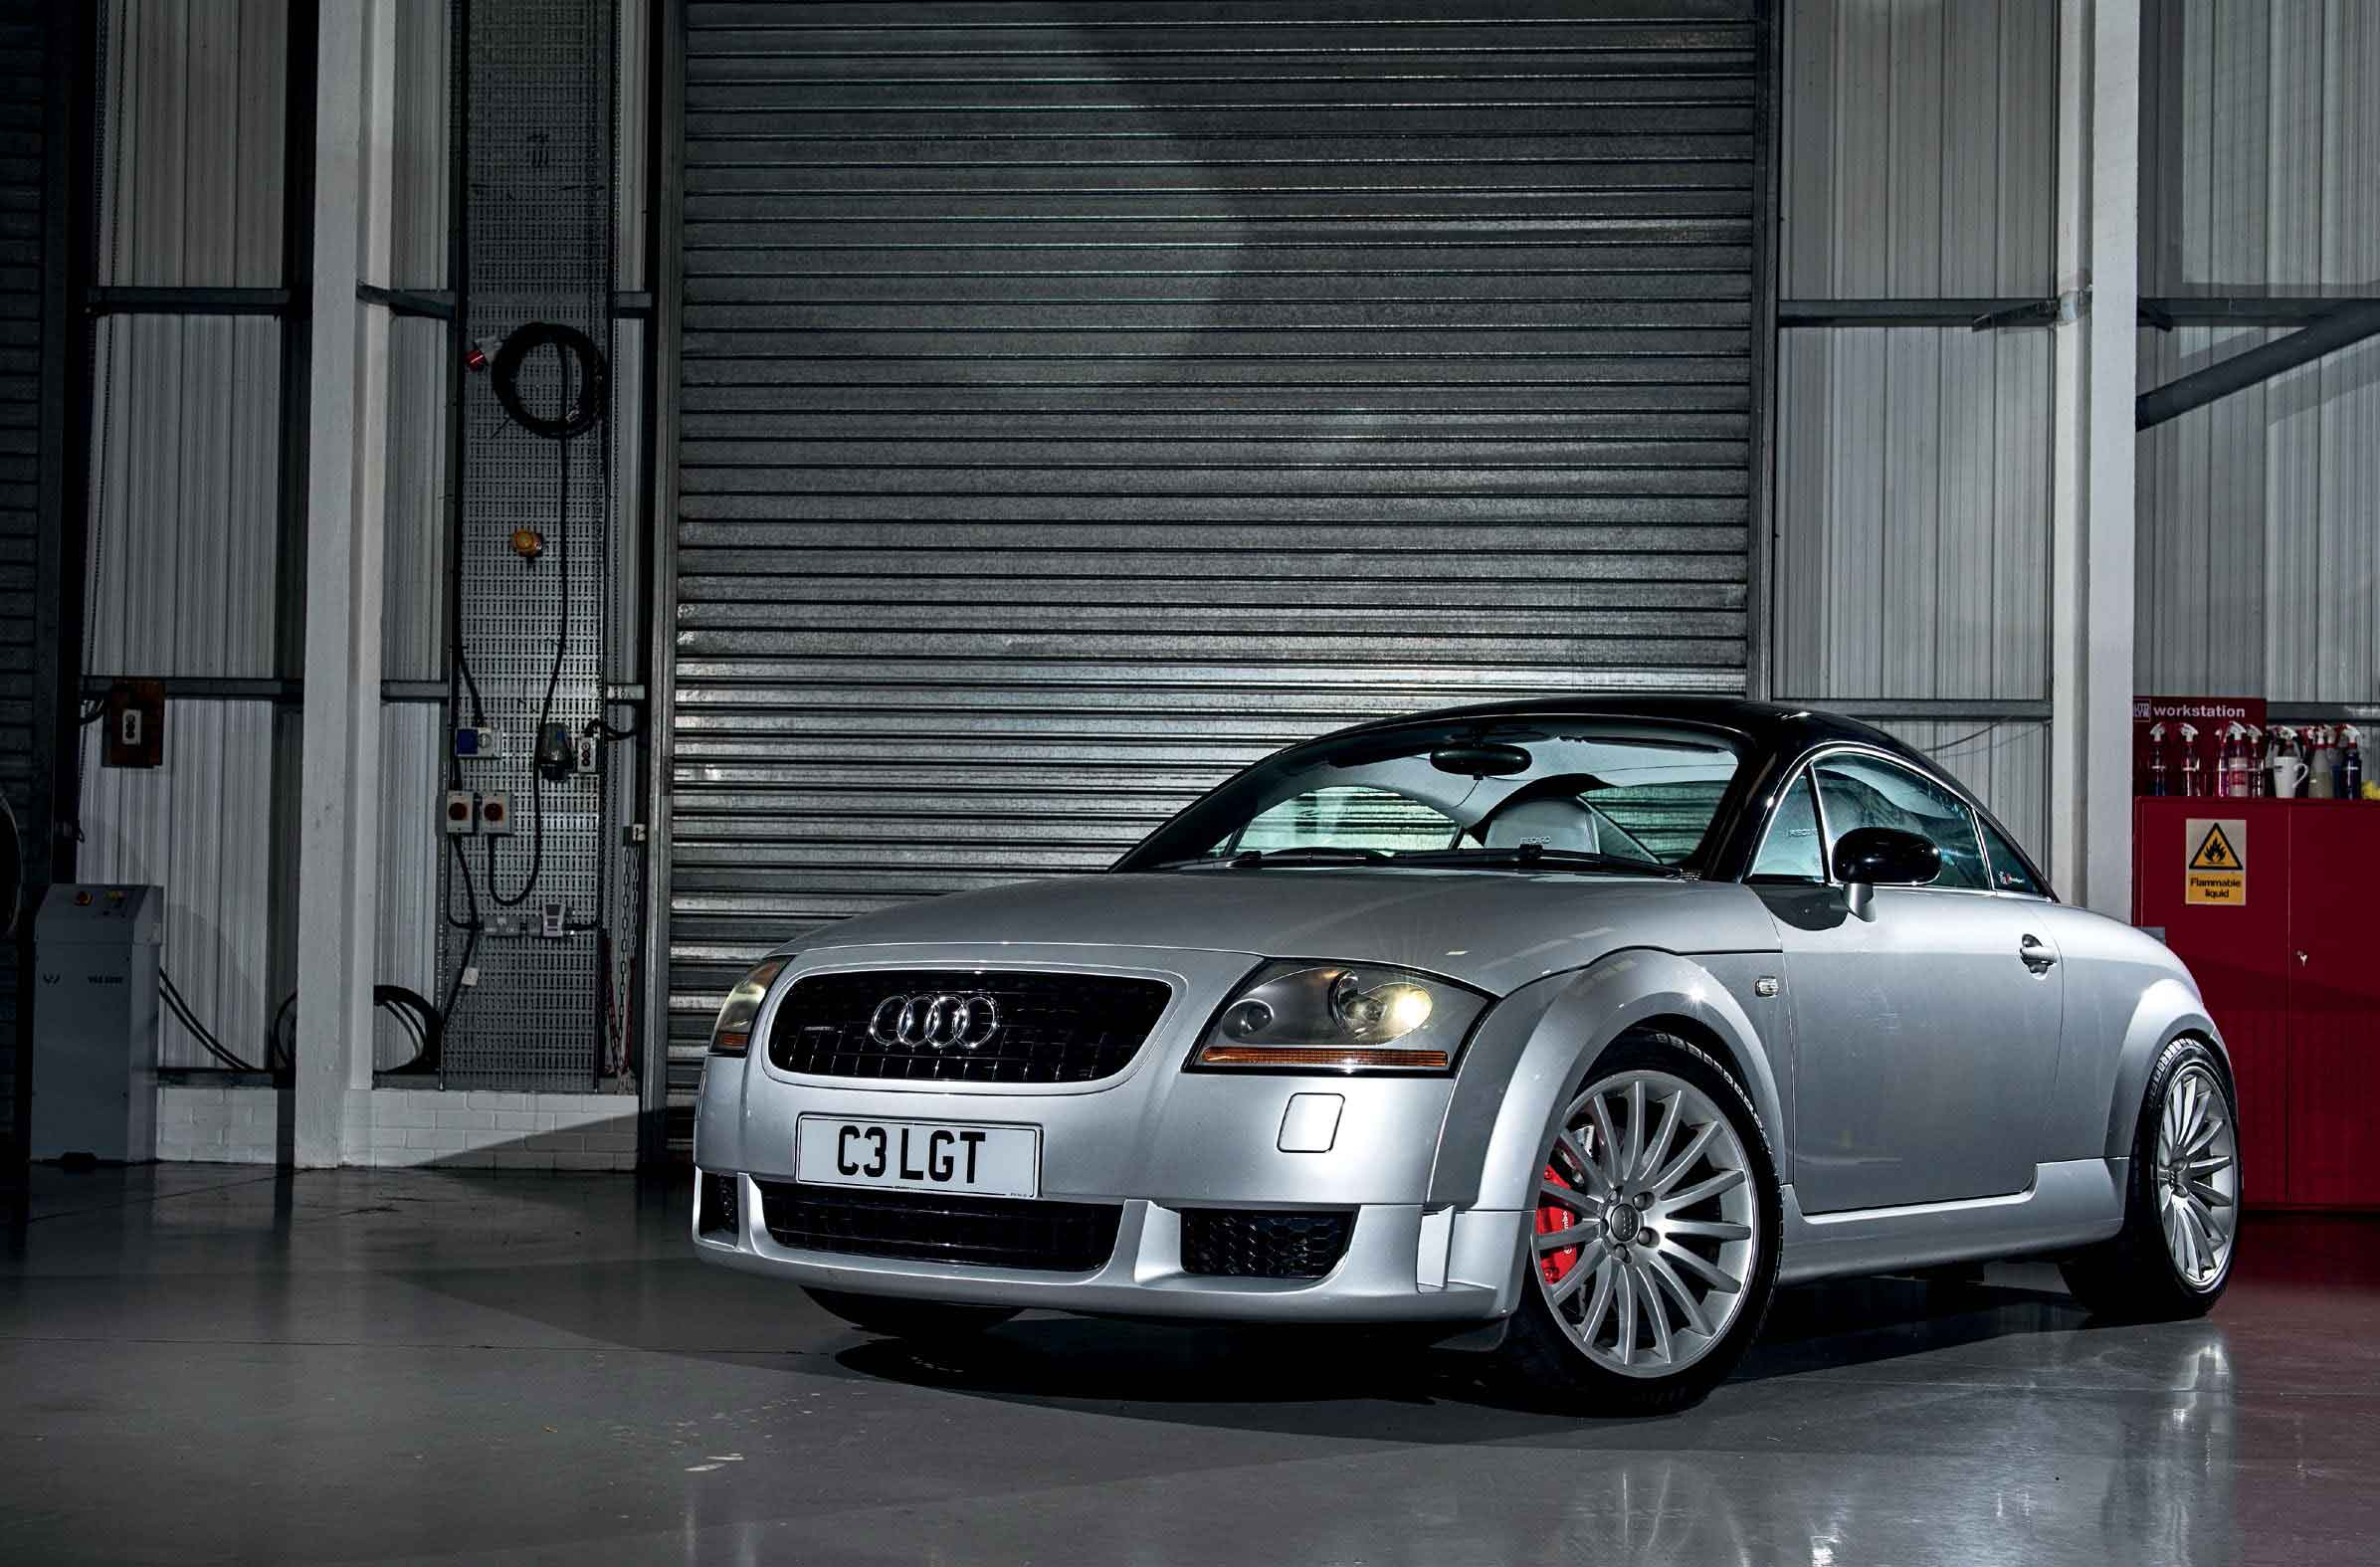 helen taylor s audi tt quattro sport 8n tuned 280bhp 1 8t. Black Bedroom Furniture Sets. Home Design Ideas